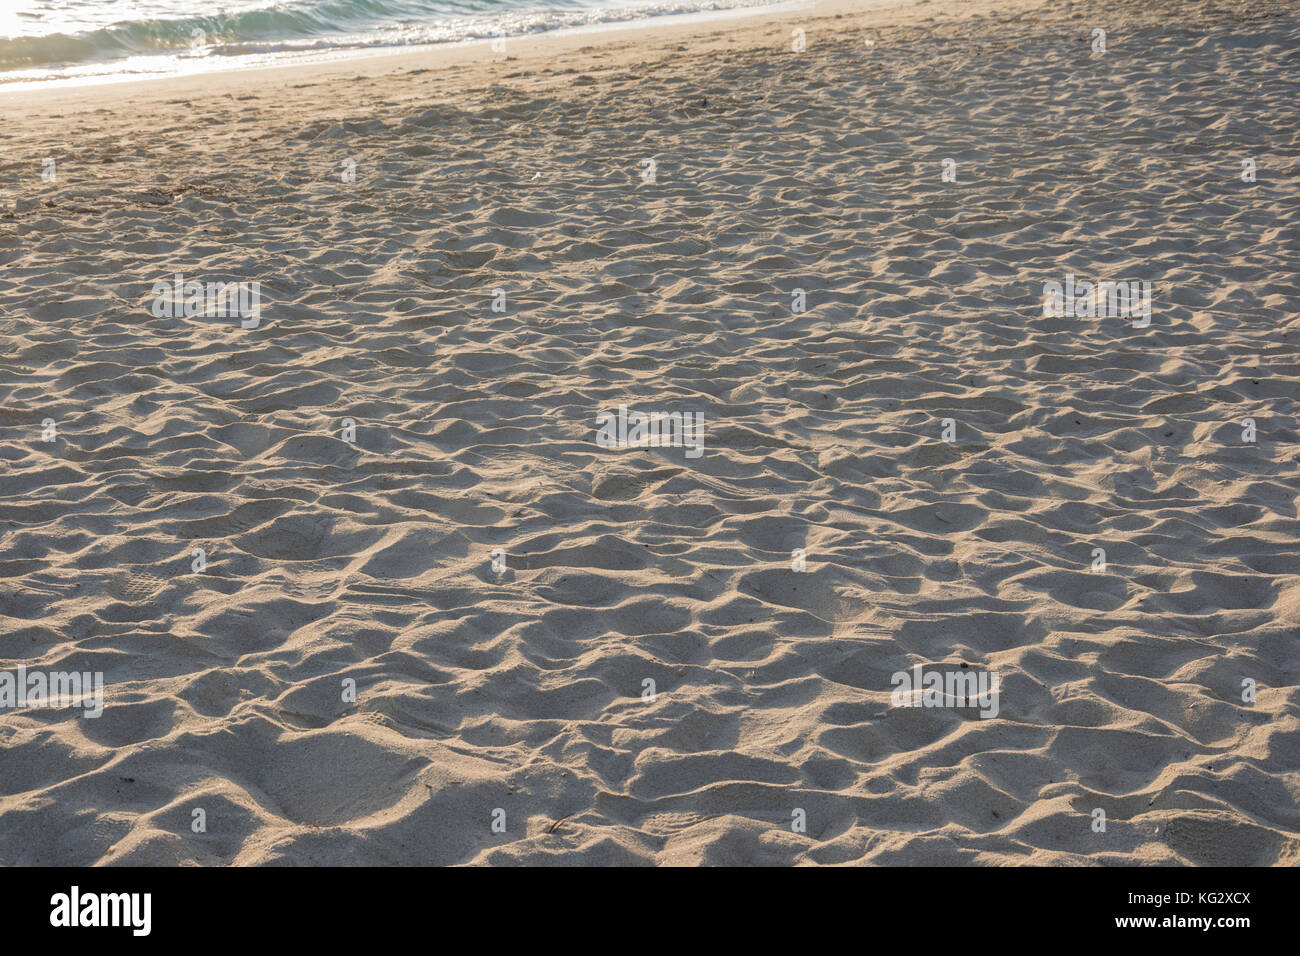 Waves of beach sand texture and background. - Stock Image